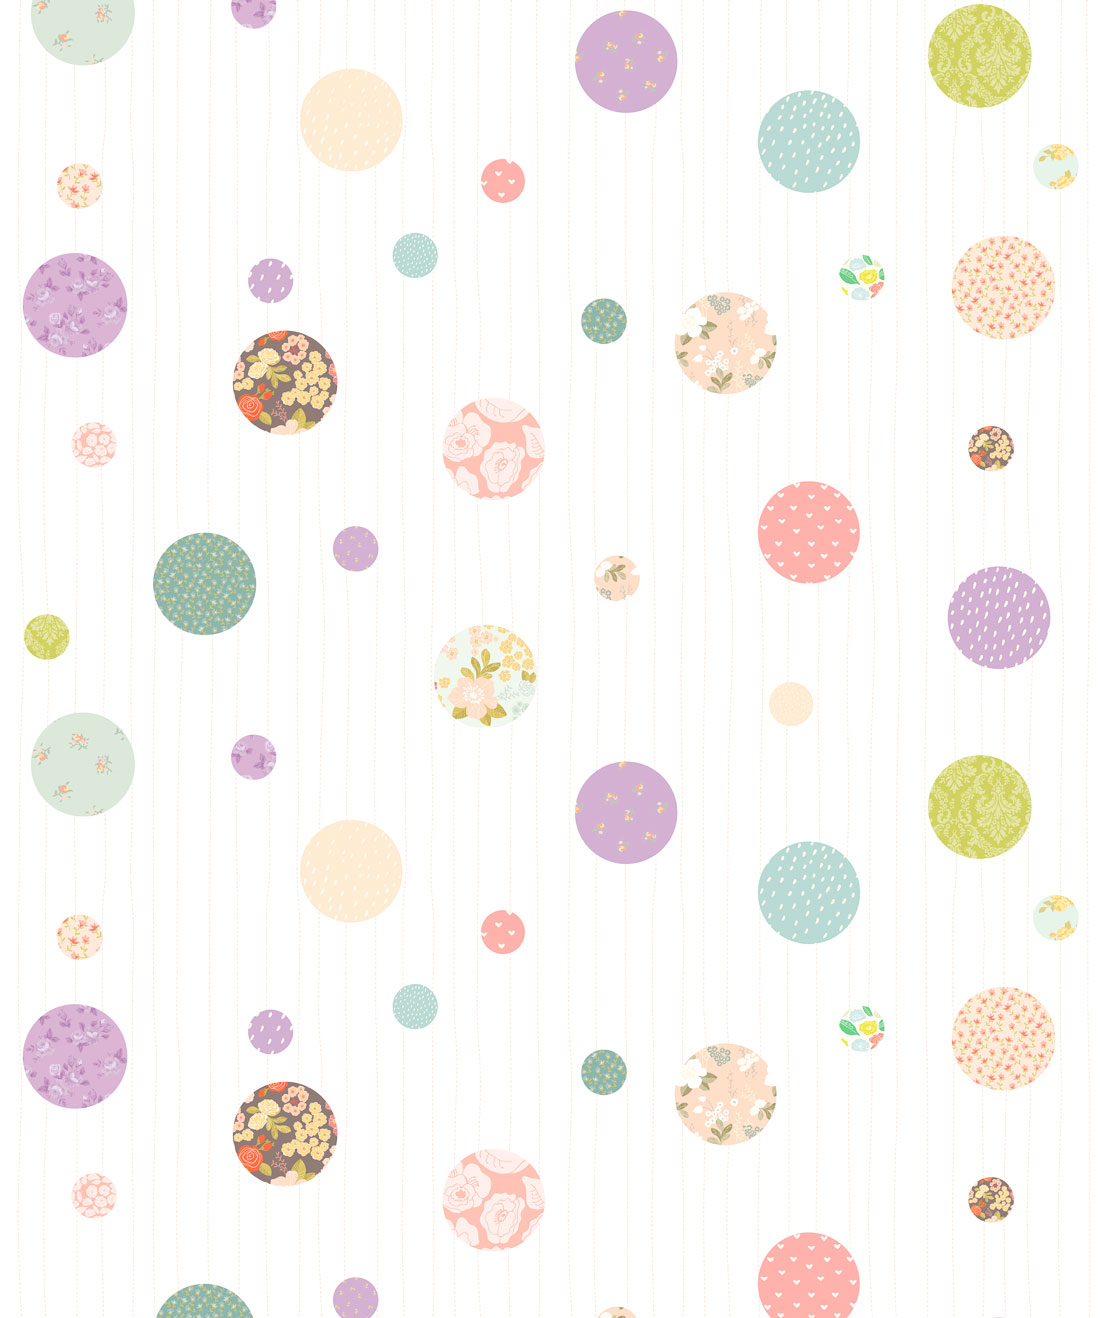 Polkadot Dreams Wallpaper